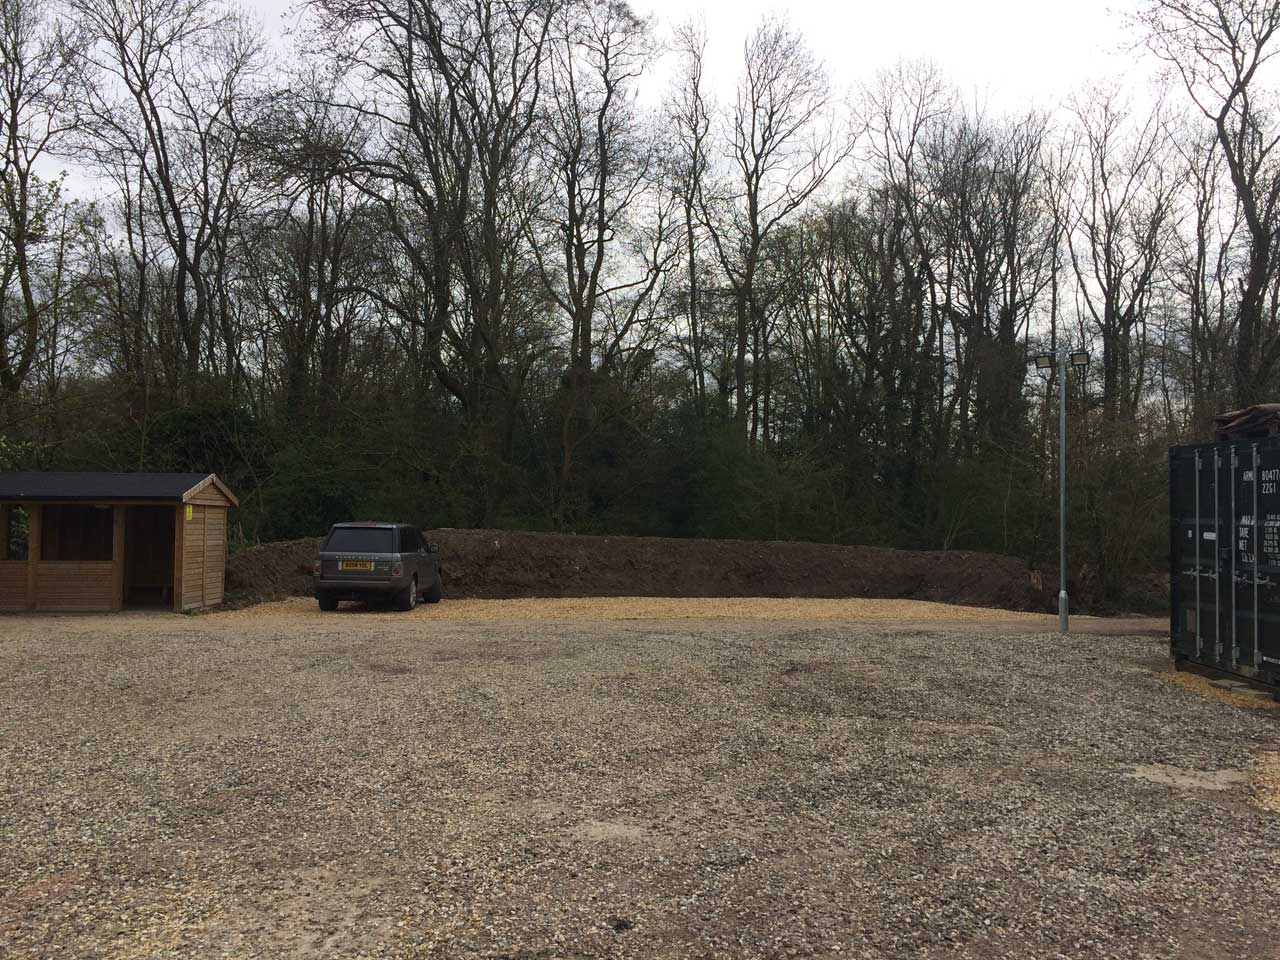 Image of Driveway and car park construction - Berkshire Hampshire Surrey - Car park driveway construction Holme Grange School Wokingham Berkshire - Let the Digger Do It